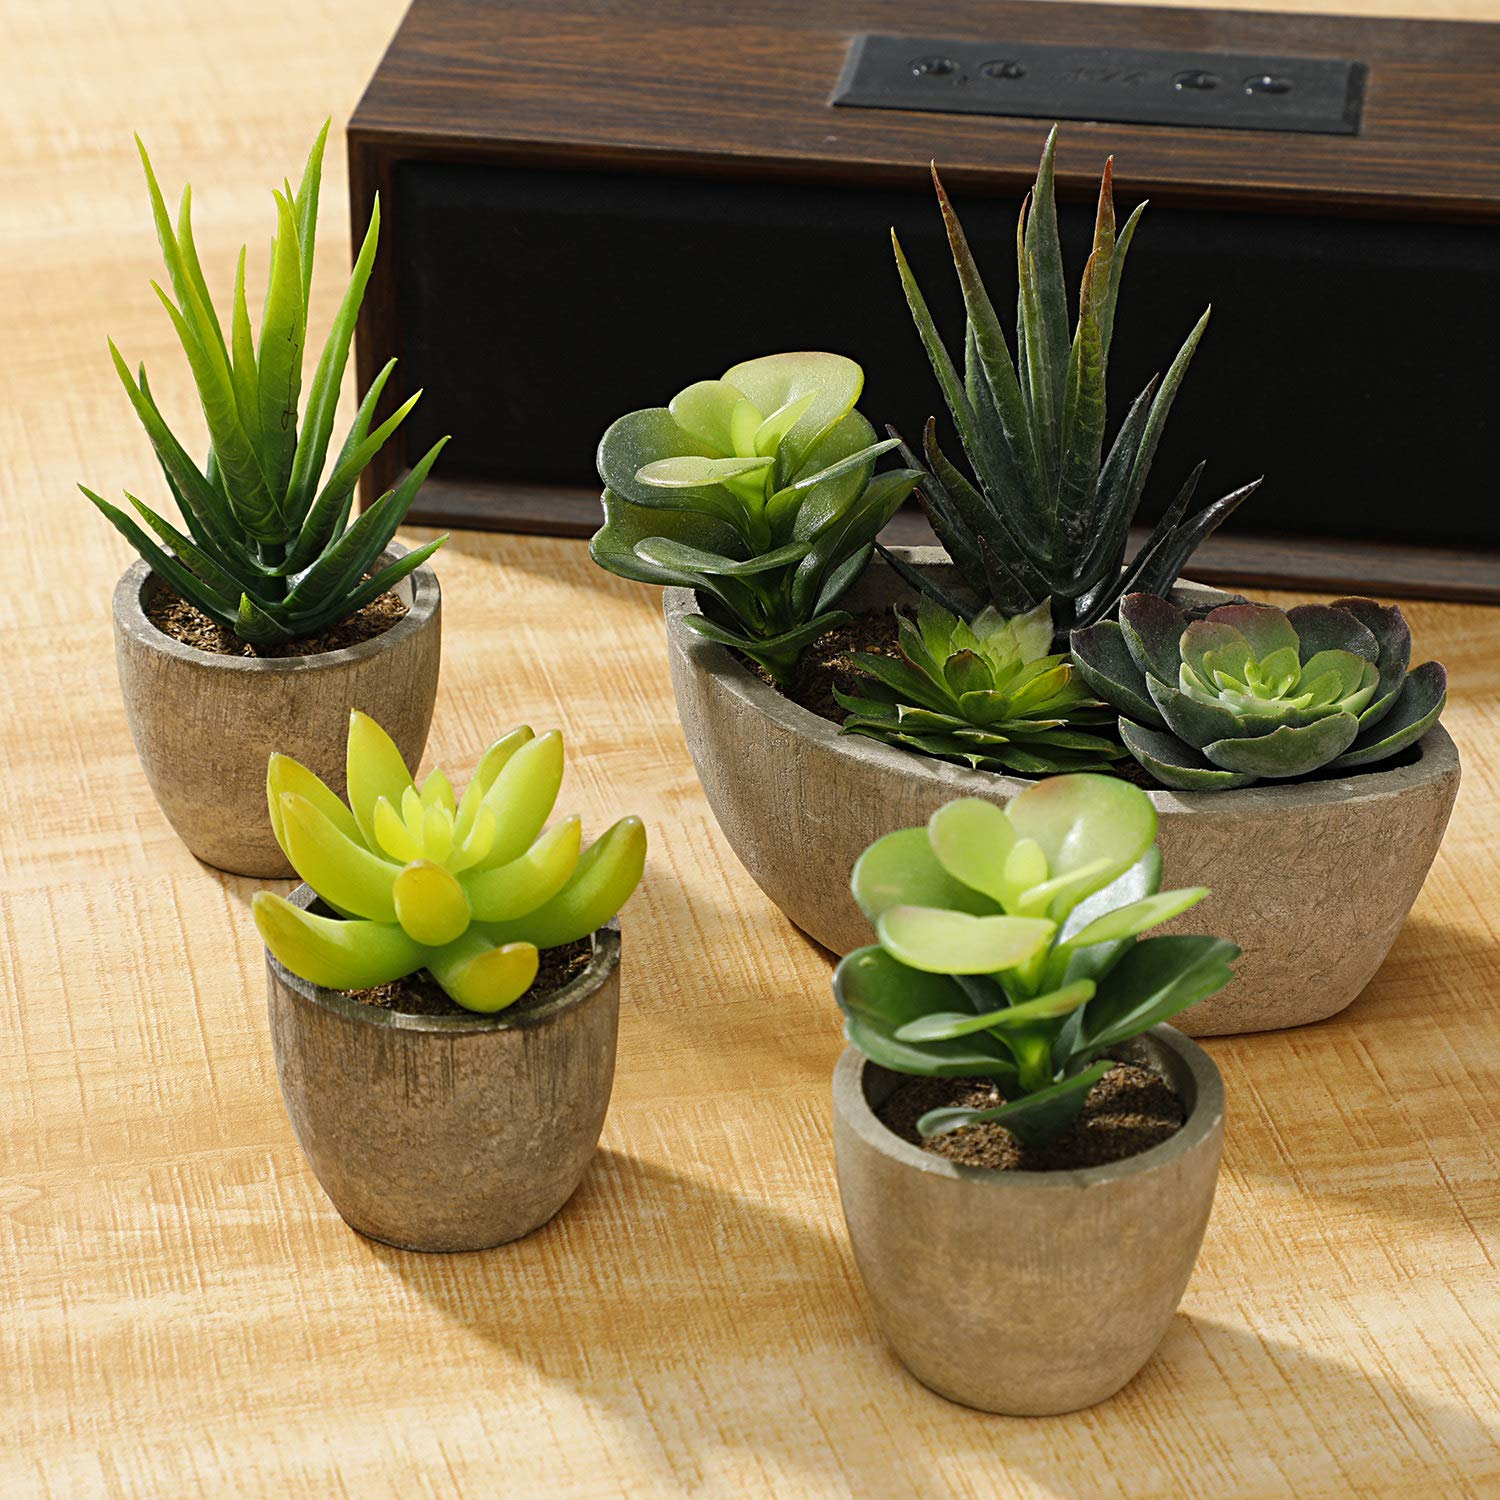 Ideal for Home Vintoney Artificial Succulent Plants Office and Outdoor Decor Set of 3 Assorted Decorative Faux Succulent Potted Fake Cactus Cacti Plants with Gray Pots